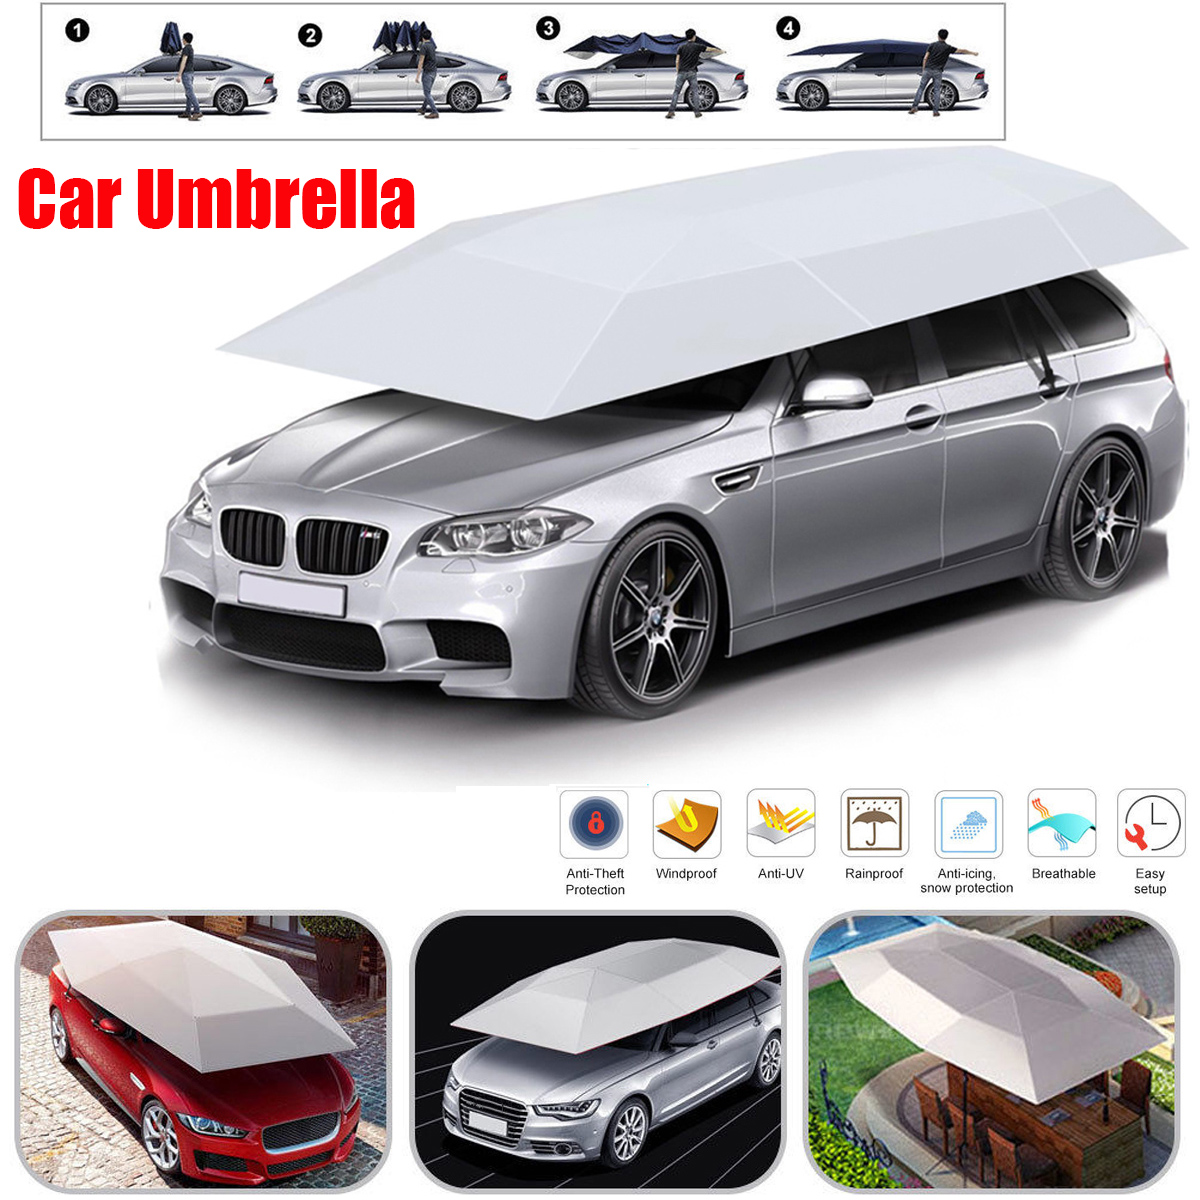 Folded Portable Semi-auto Car Car Protection Umbrella Carport Tent Movable Canopy Cover Foldable with Anti-UV,Water-Proof, Rain Wind,Snow,Storm,Hail Proof 158*83inch